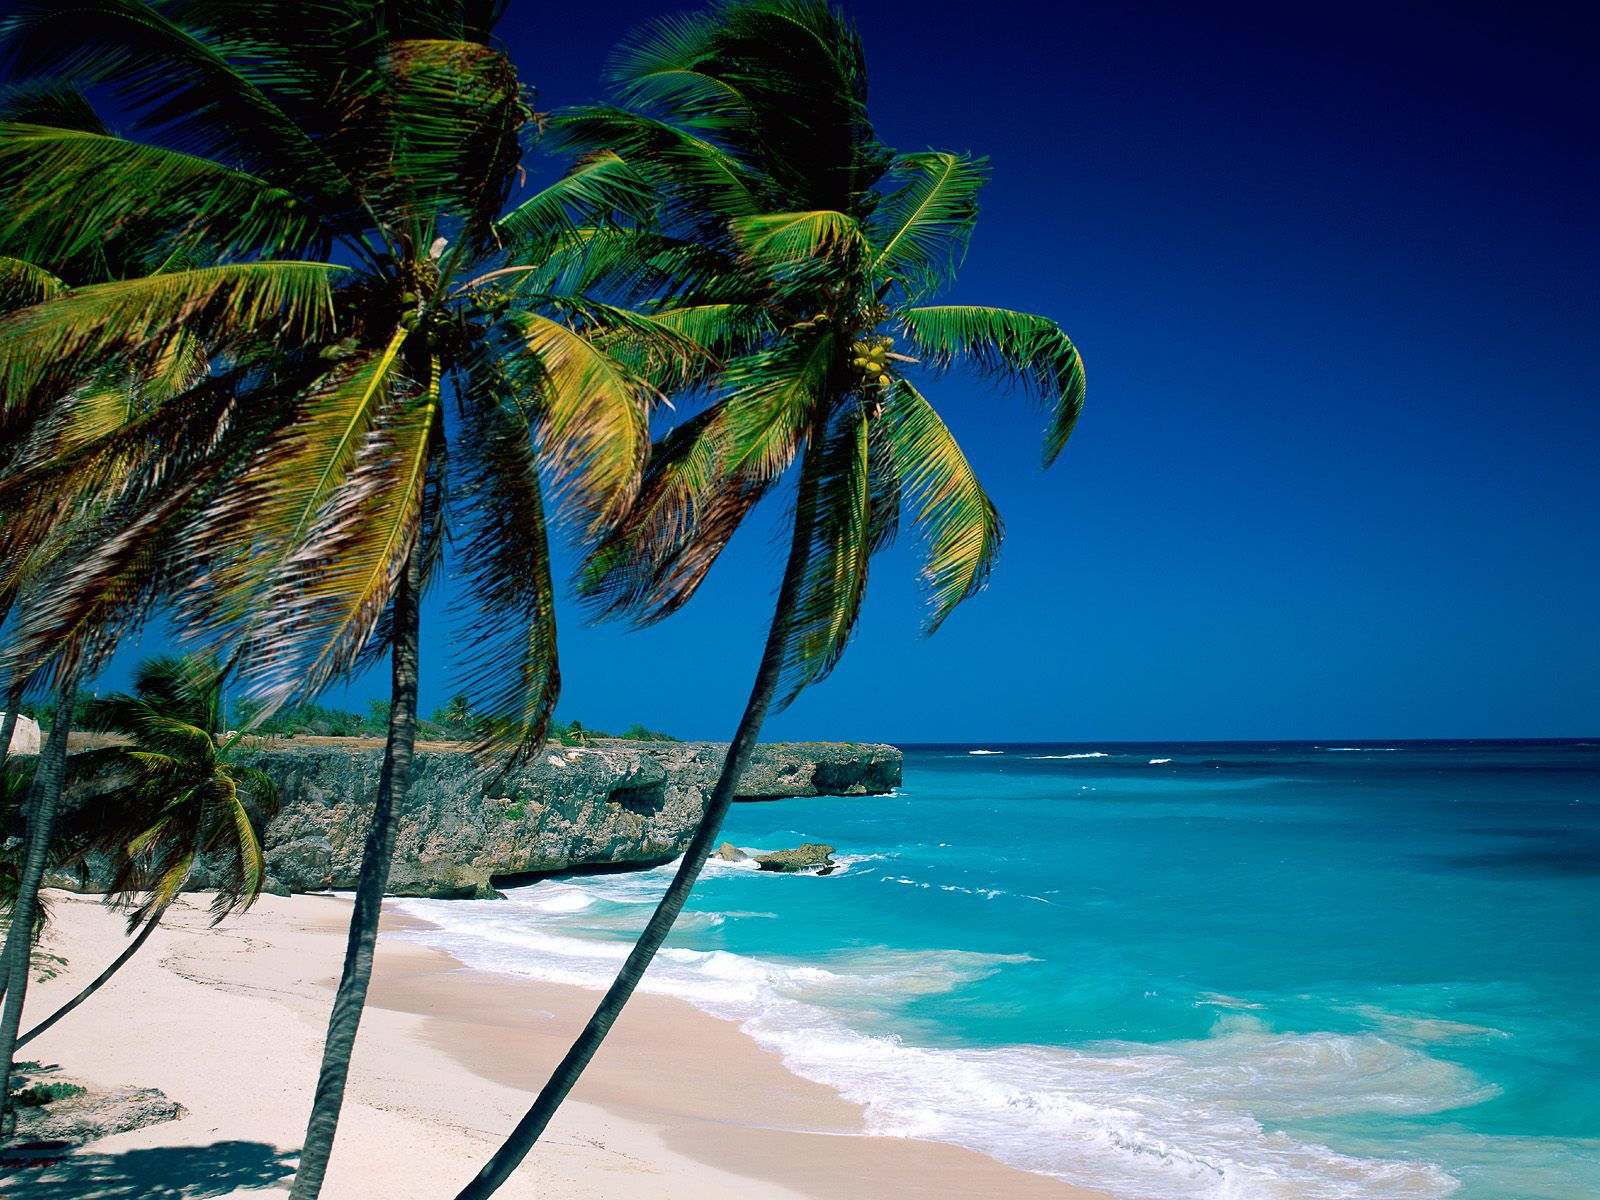 Beach, Barbados HD+1600×900, UXGA 1600×1200 – HD Wallpapers Backgrounds Desktop, iphone & Android Free Download